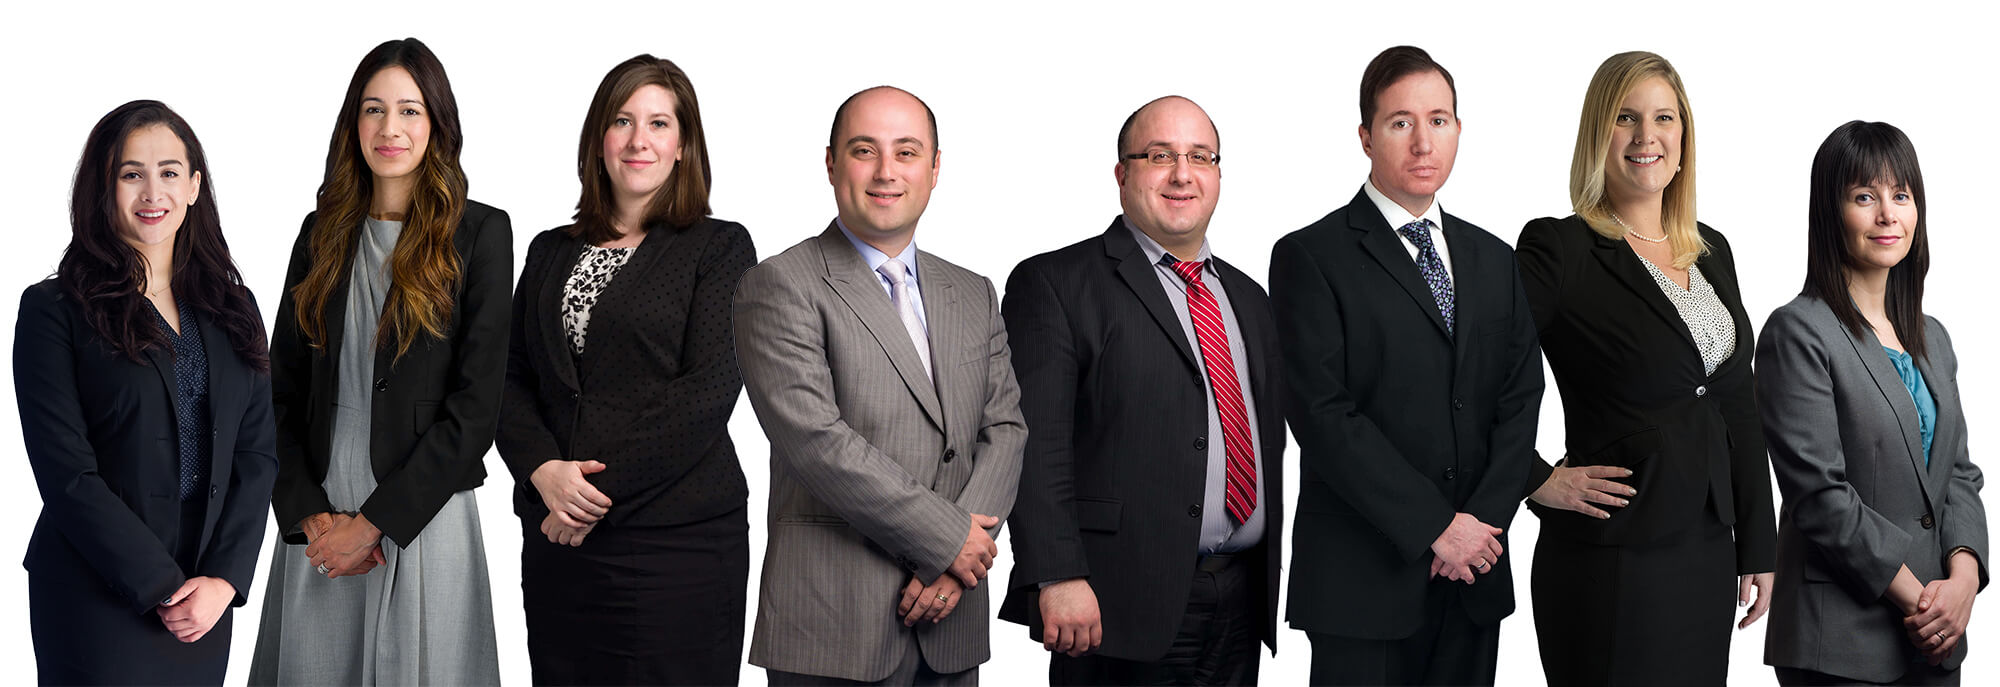 Shulman Expands to Vaughan